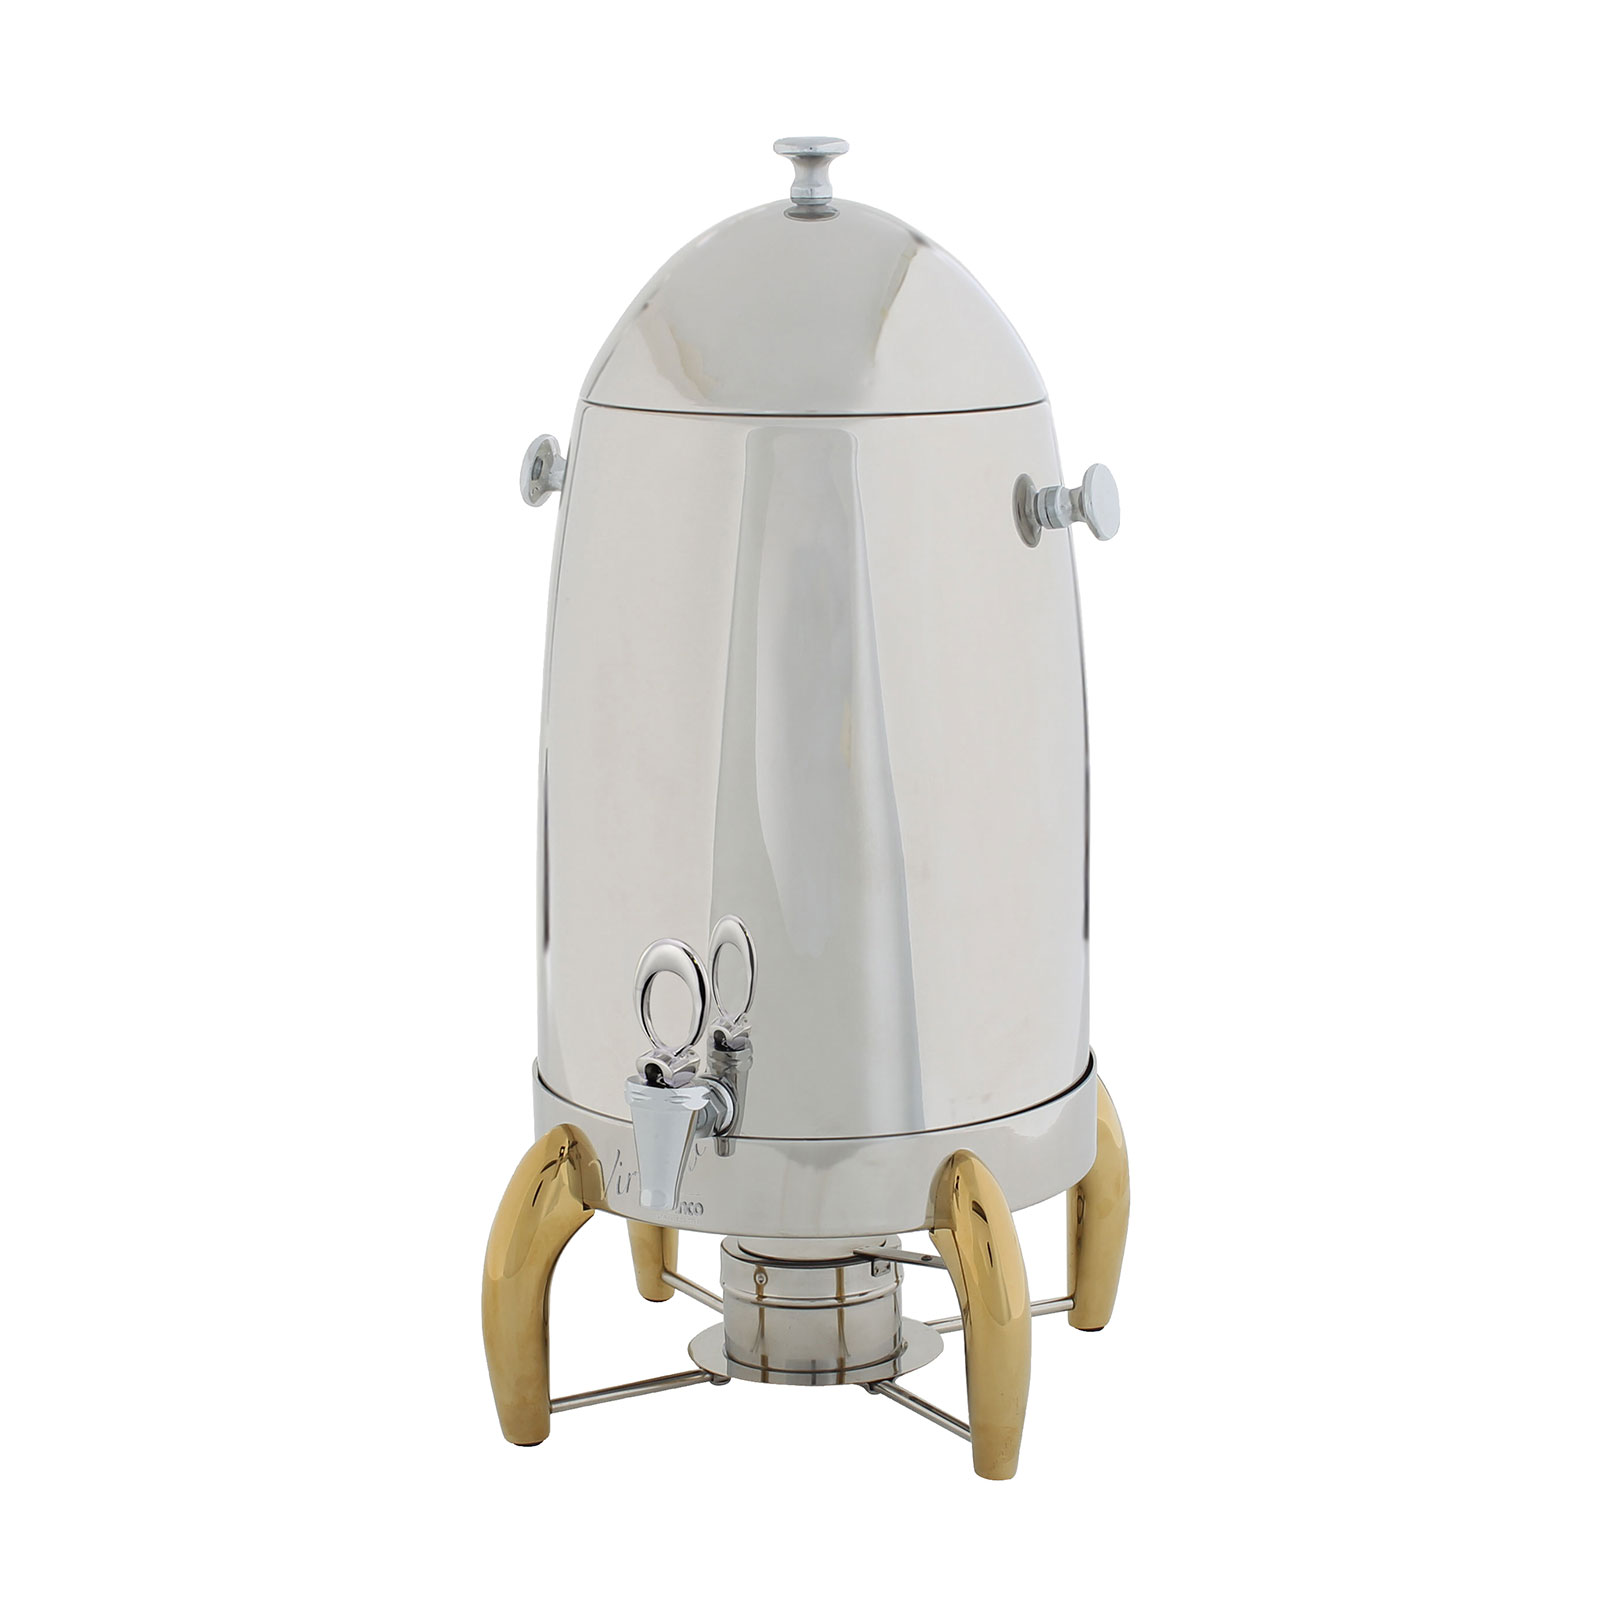 Winco 905A coffee chafer urn